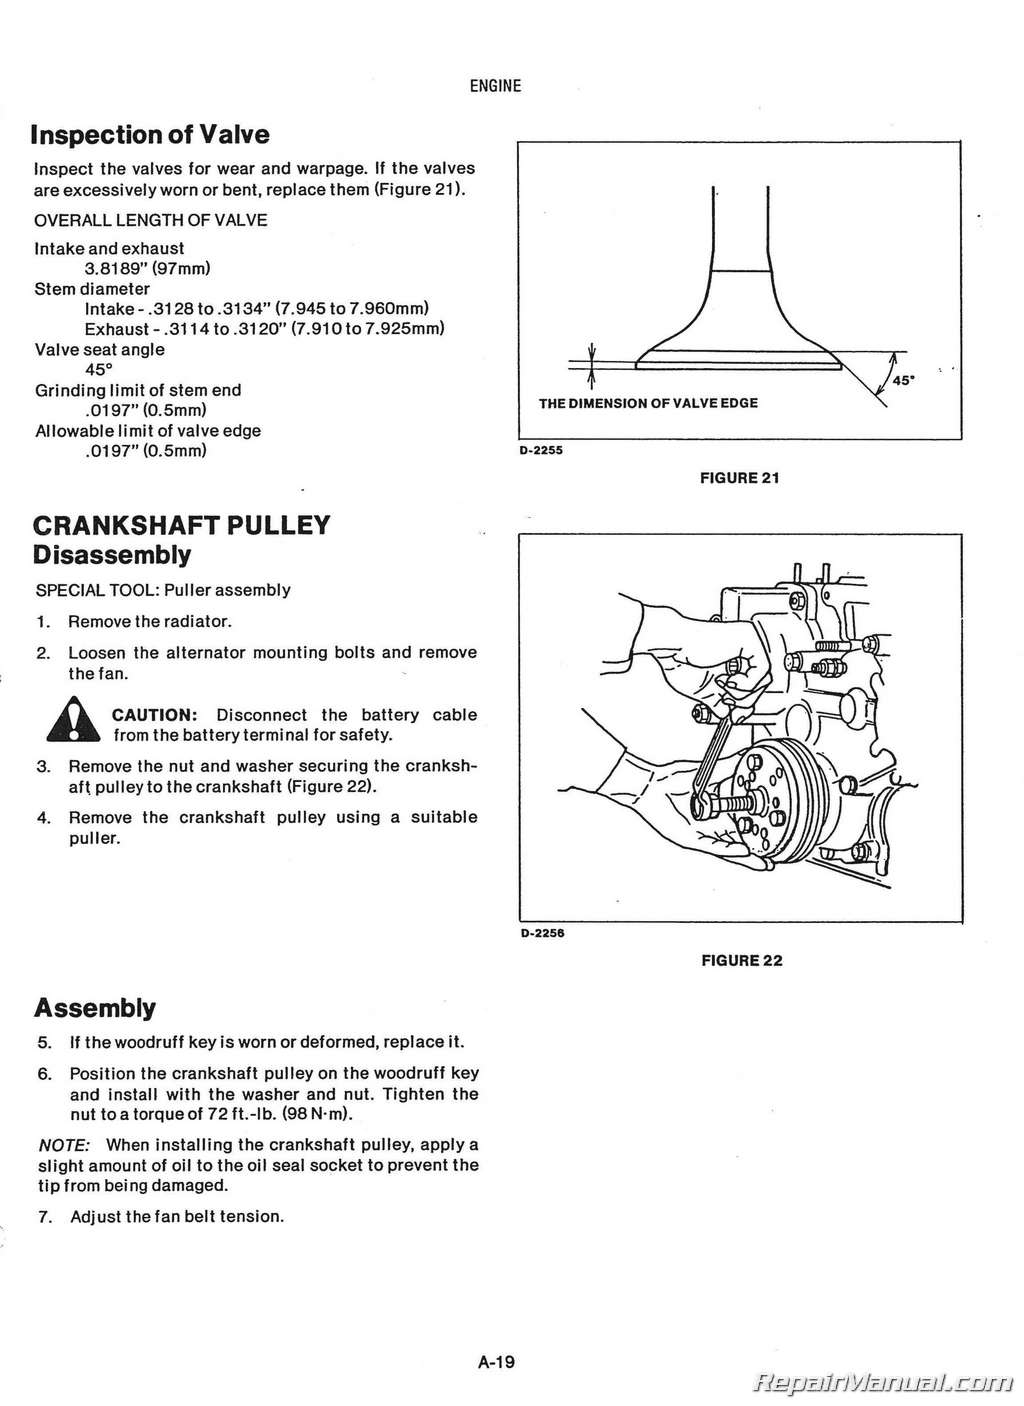 deutz allis 5215 4wd diesel compact tractor service manual rh repairmanual com 7030 Allis Chalmers Specs Allis Chalmers Wiring Schematic